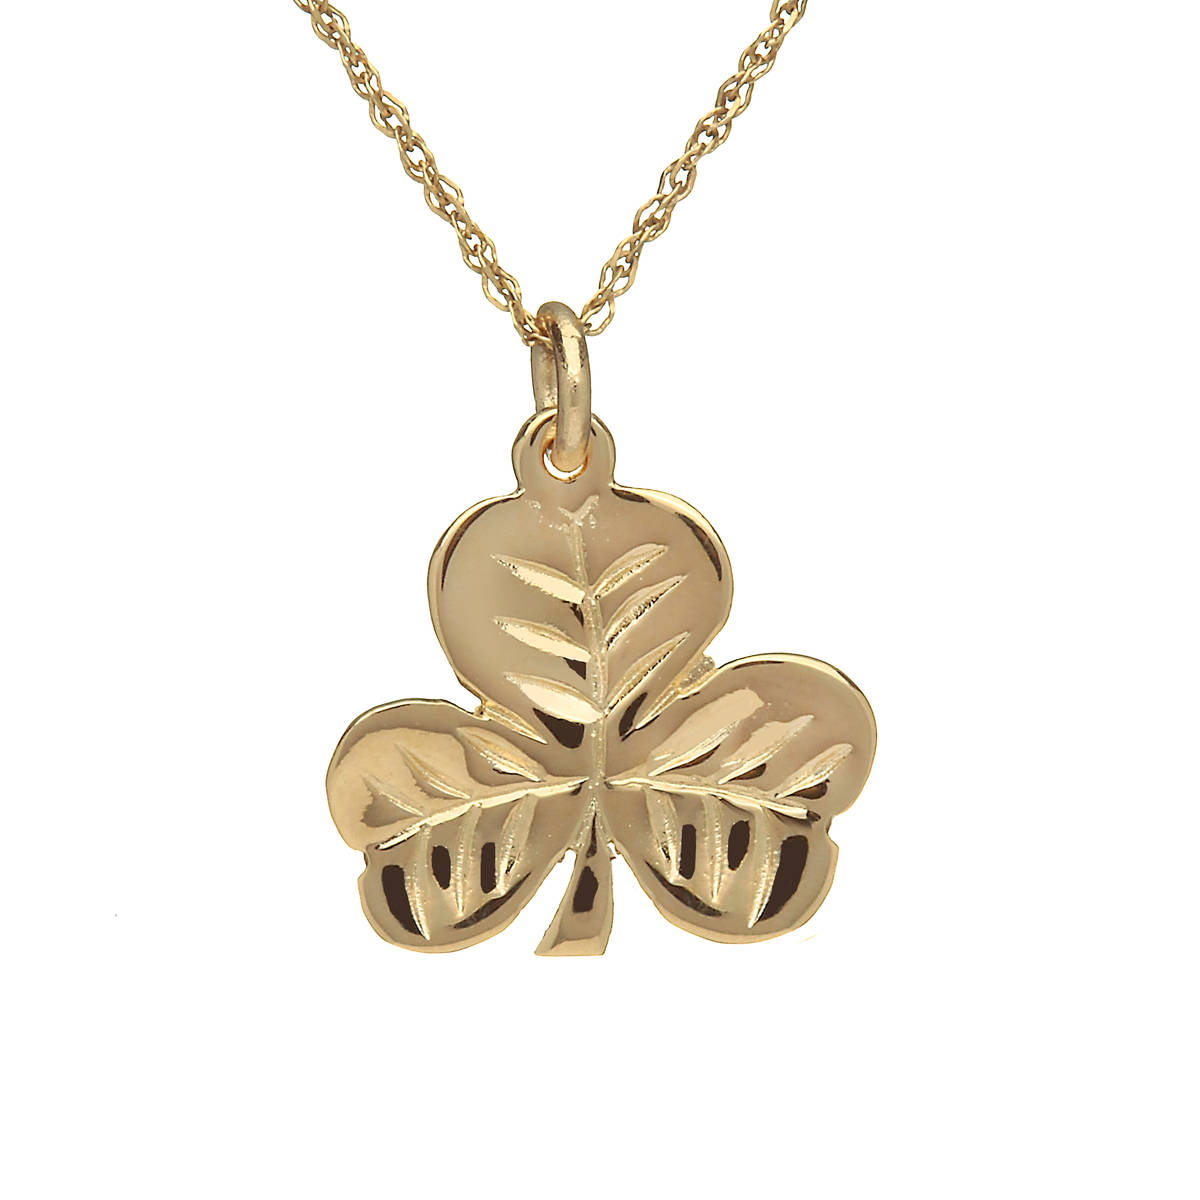 \nLoose 10 carat yellow gold shamrock charm-no chain included.\nThis is the National Emblem of Ireland known all over the worldonSt. Patrick's Day.